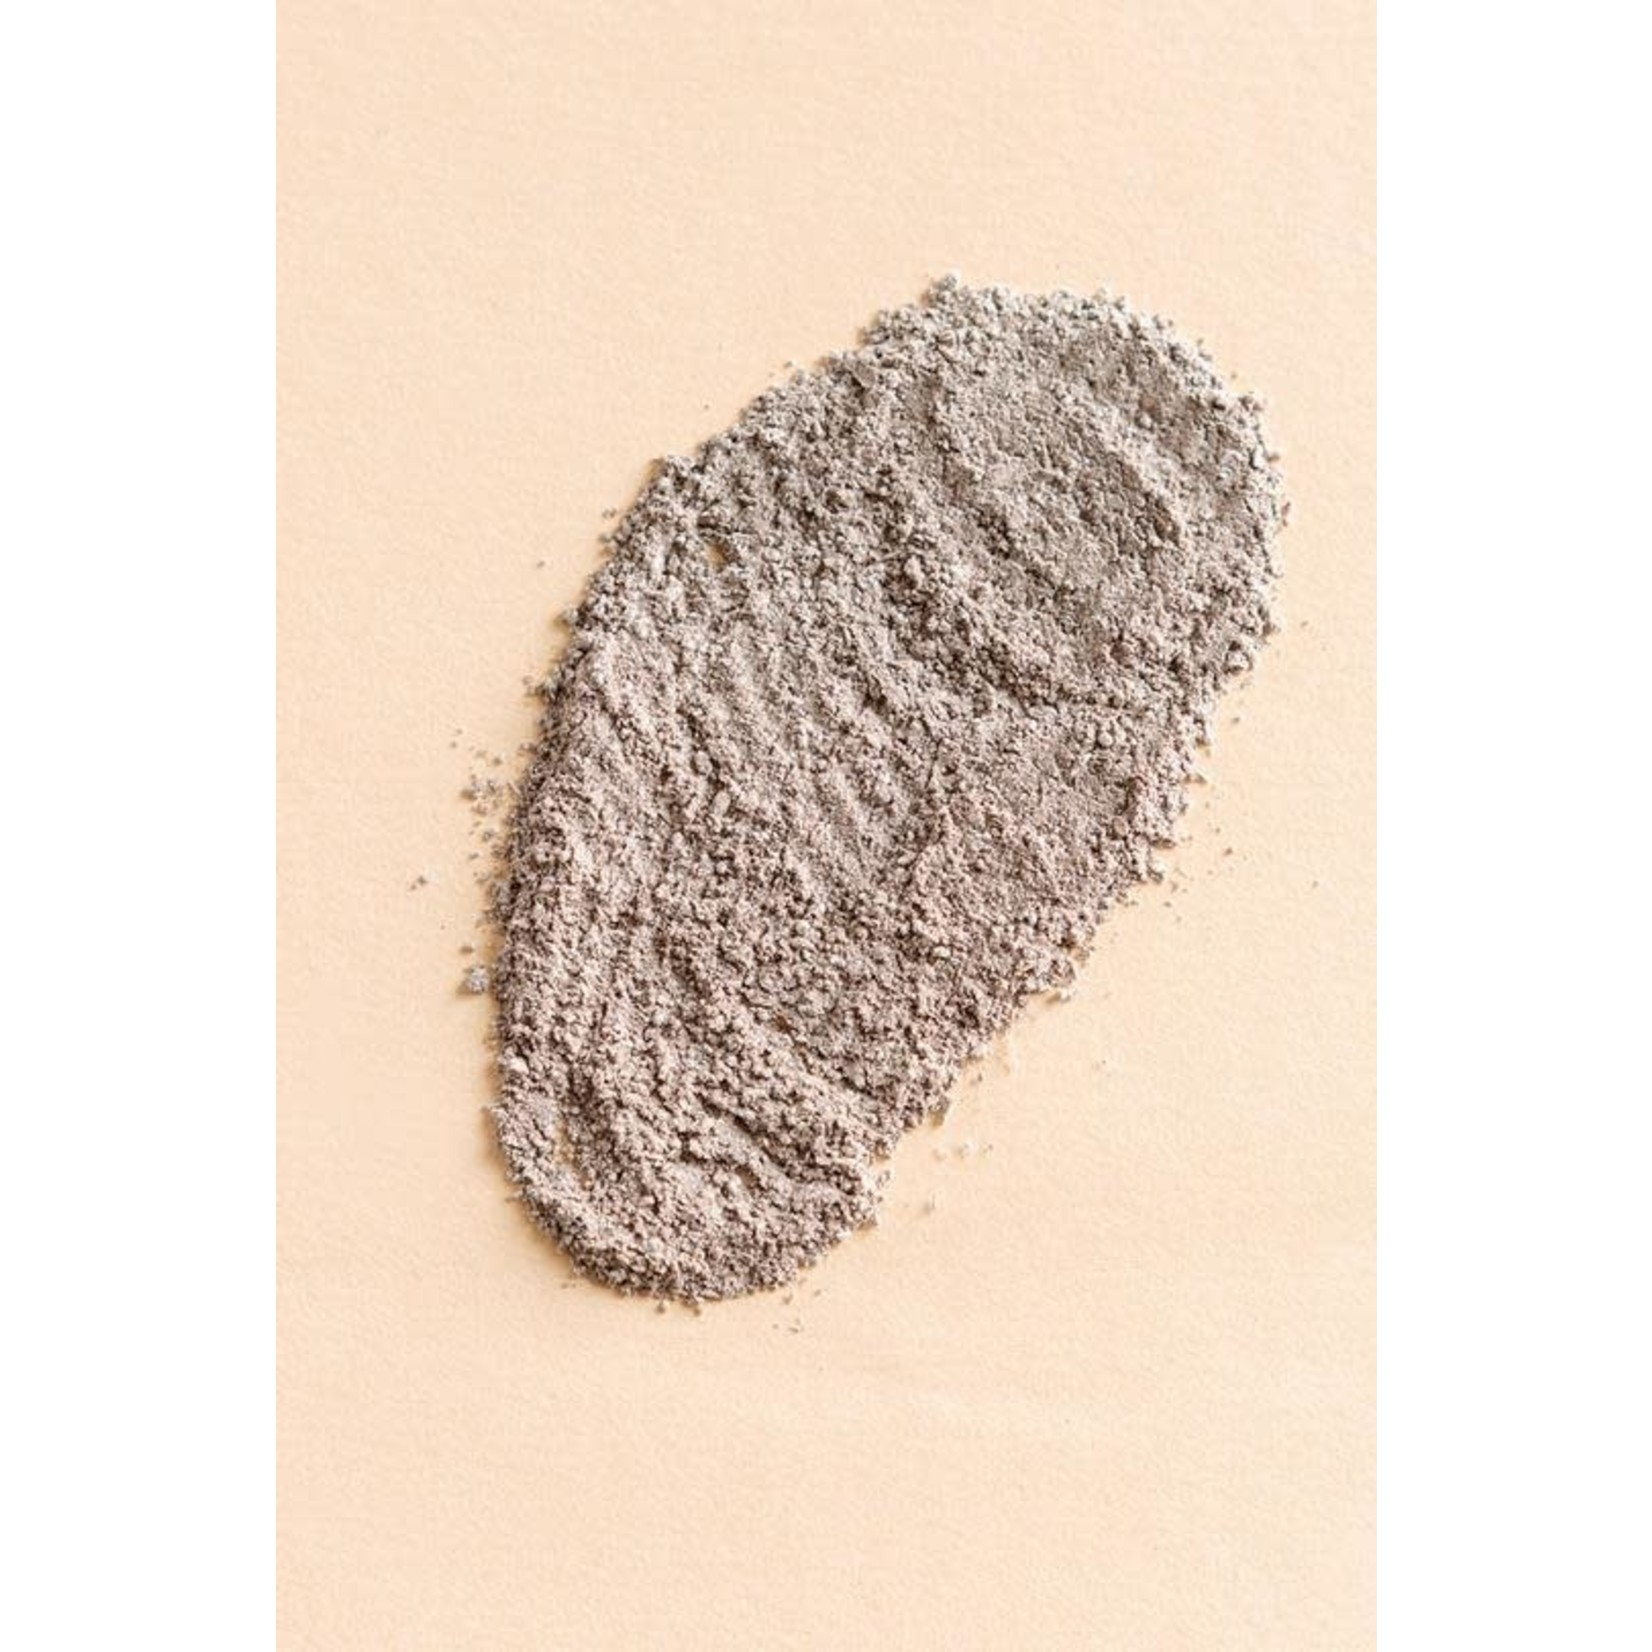 OM ORGANICS COCOA COFFEE EXFOLIATING DUST